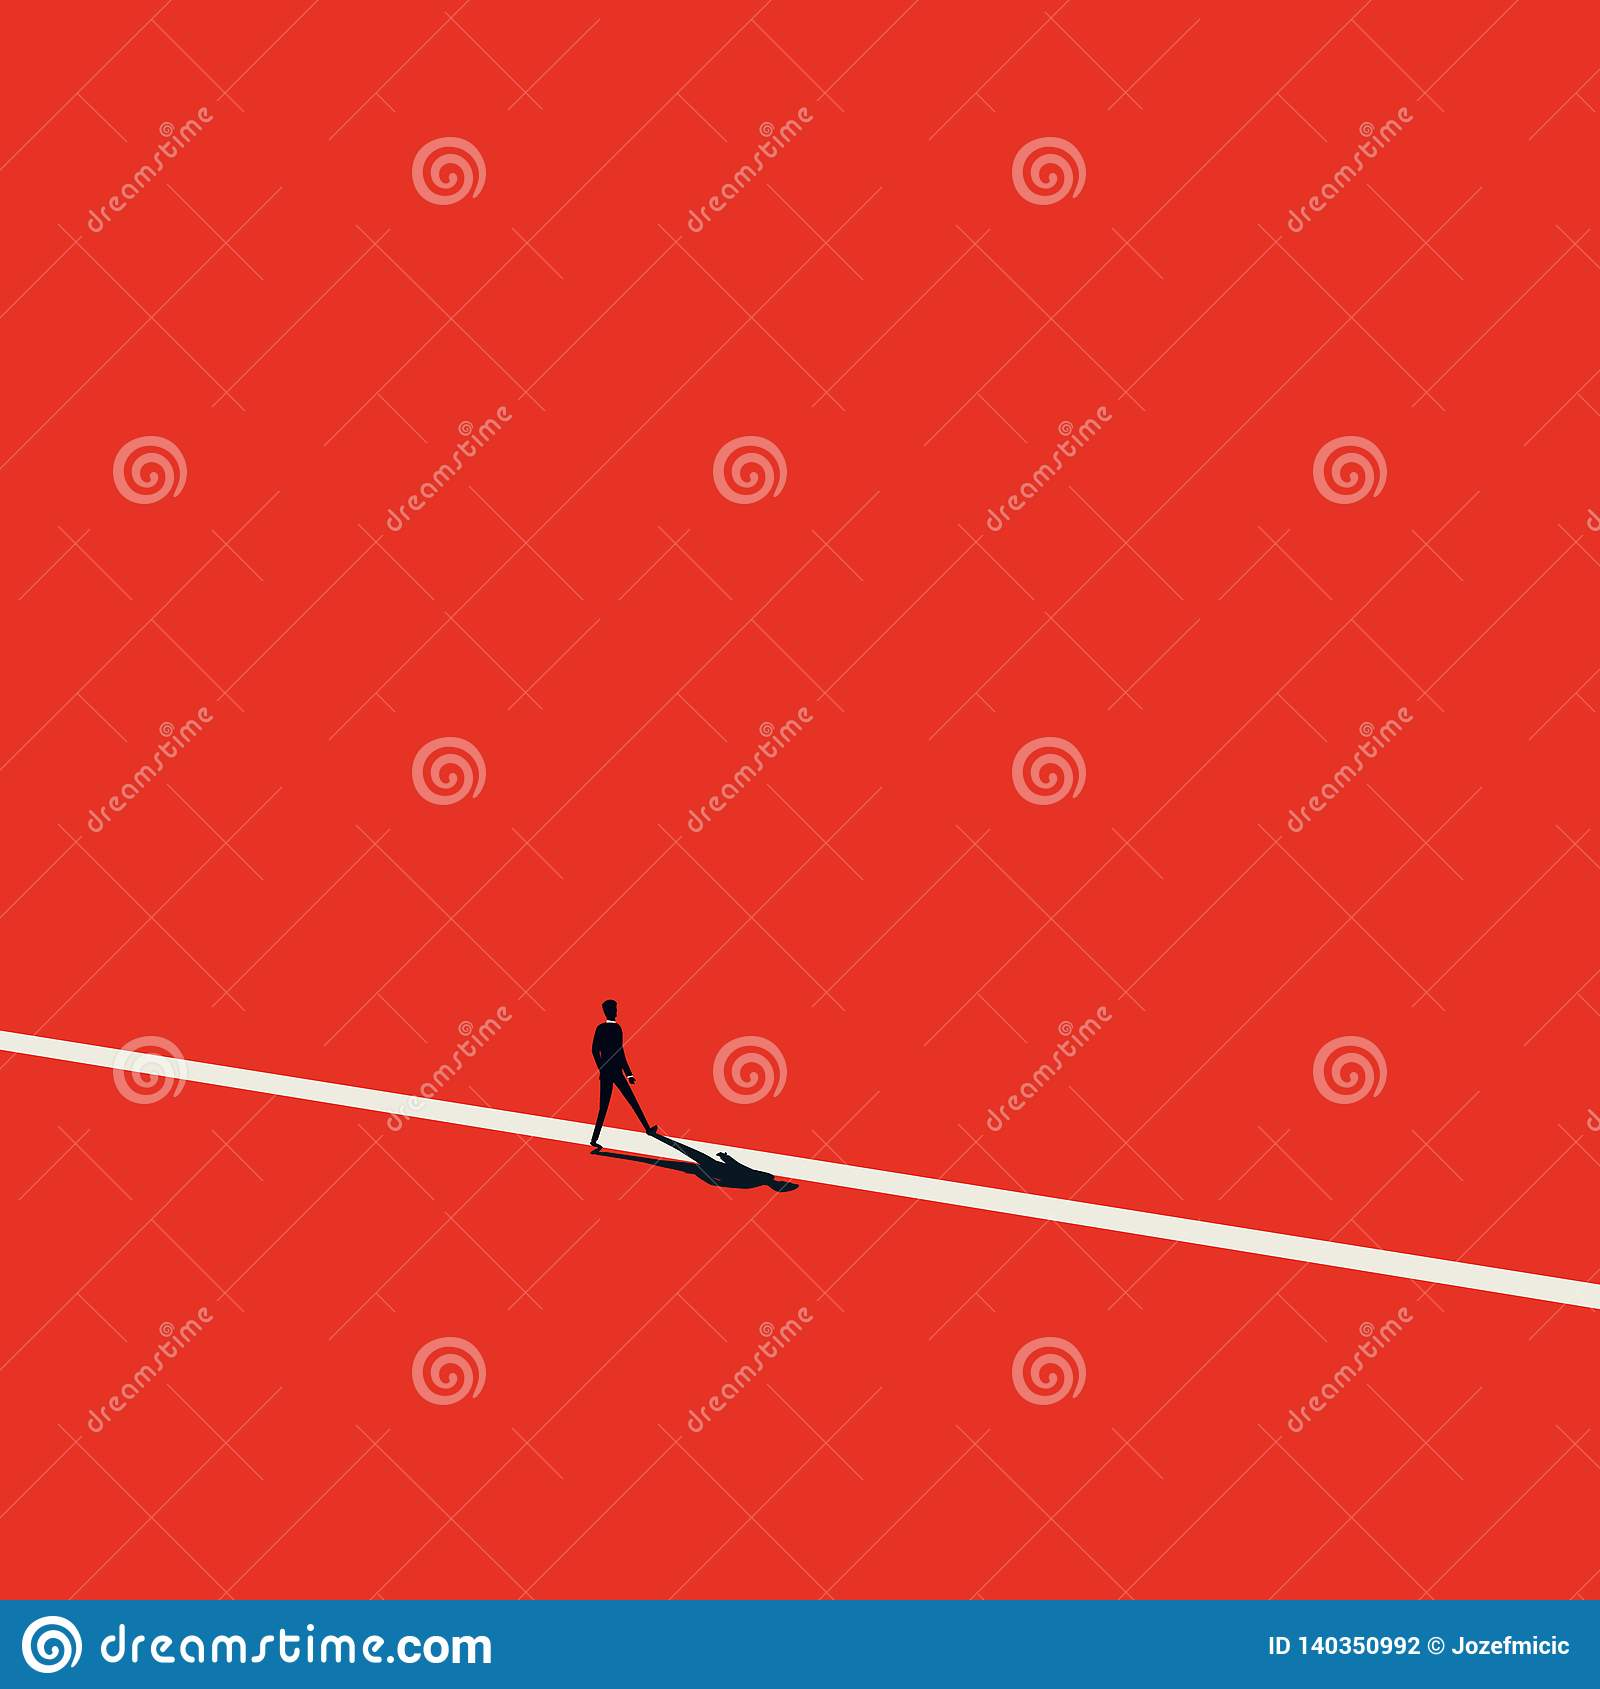 New opportunity in career vector concept. Minimalist artistic style. Symbol of new beginning, challenge, progress